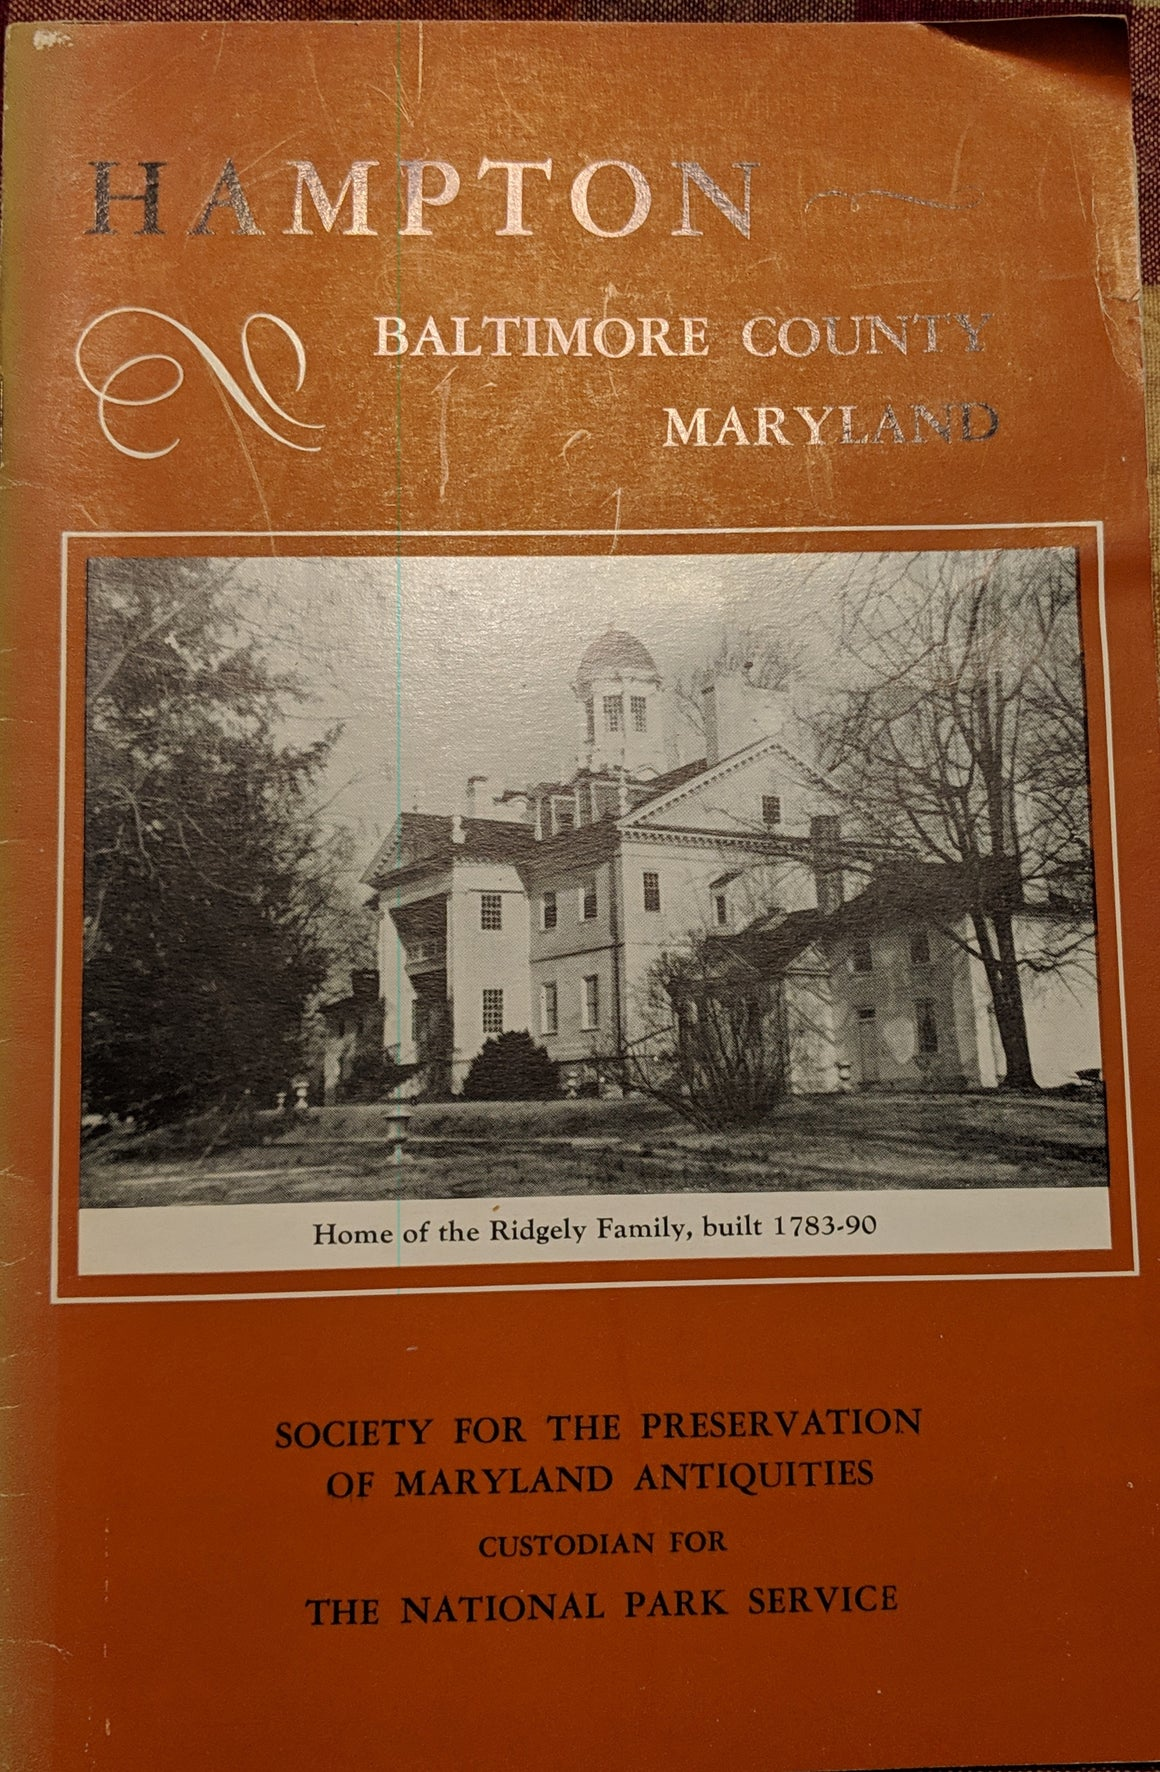 Book - Hampton Baltimore County Maryland